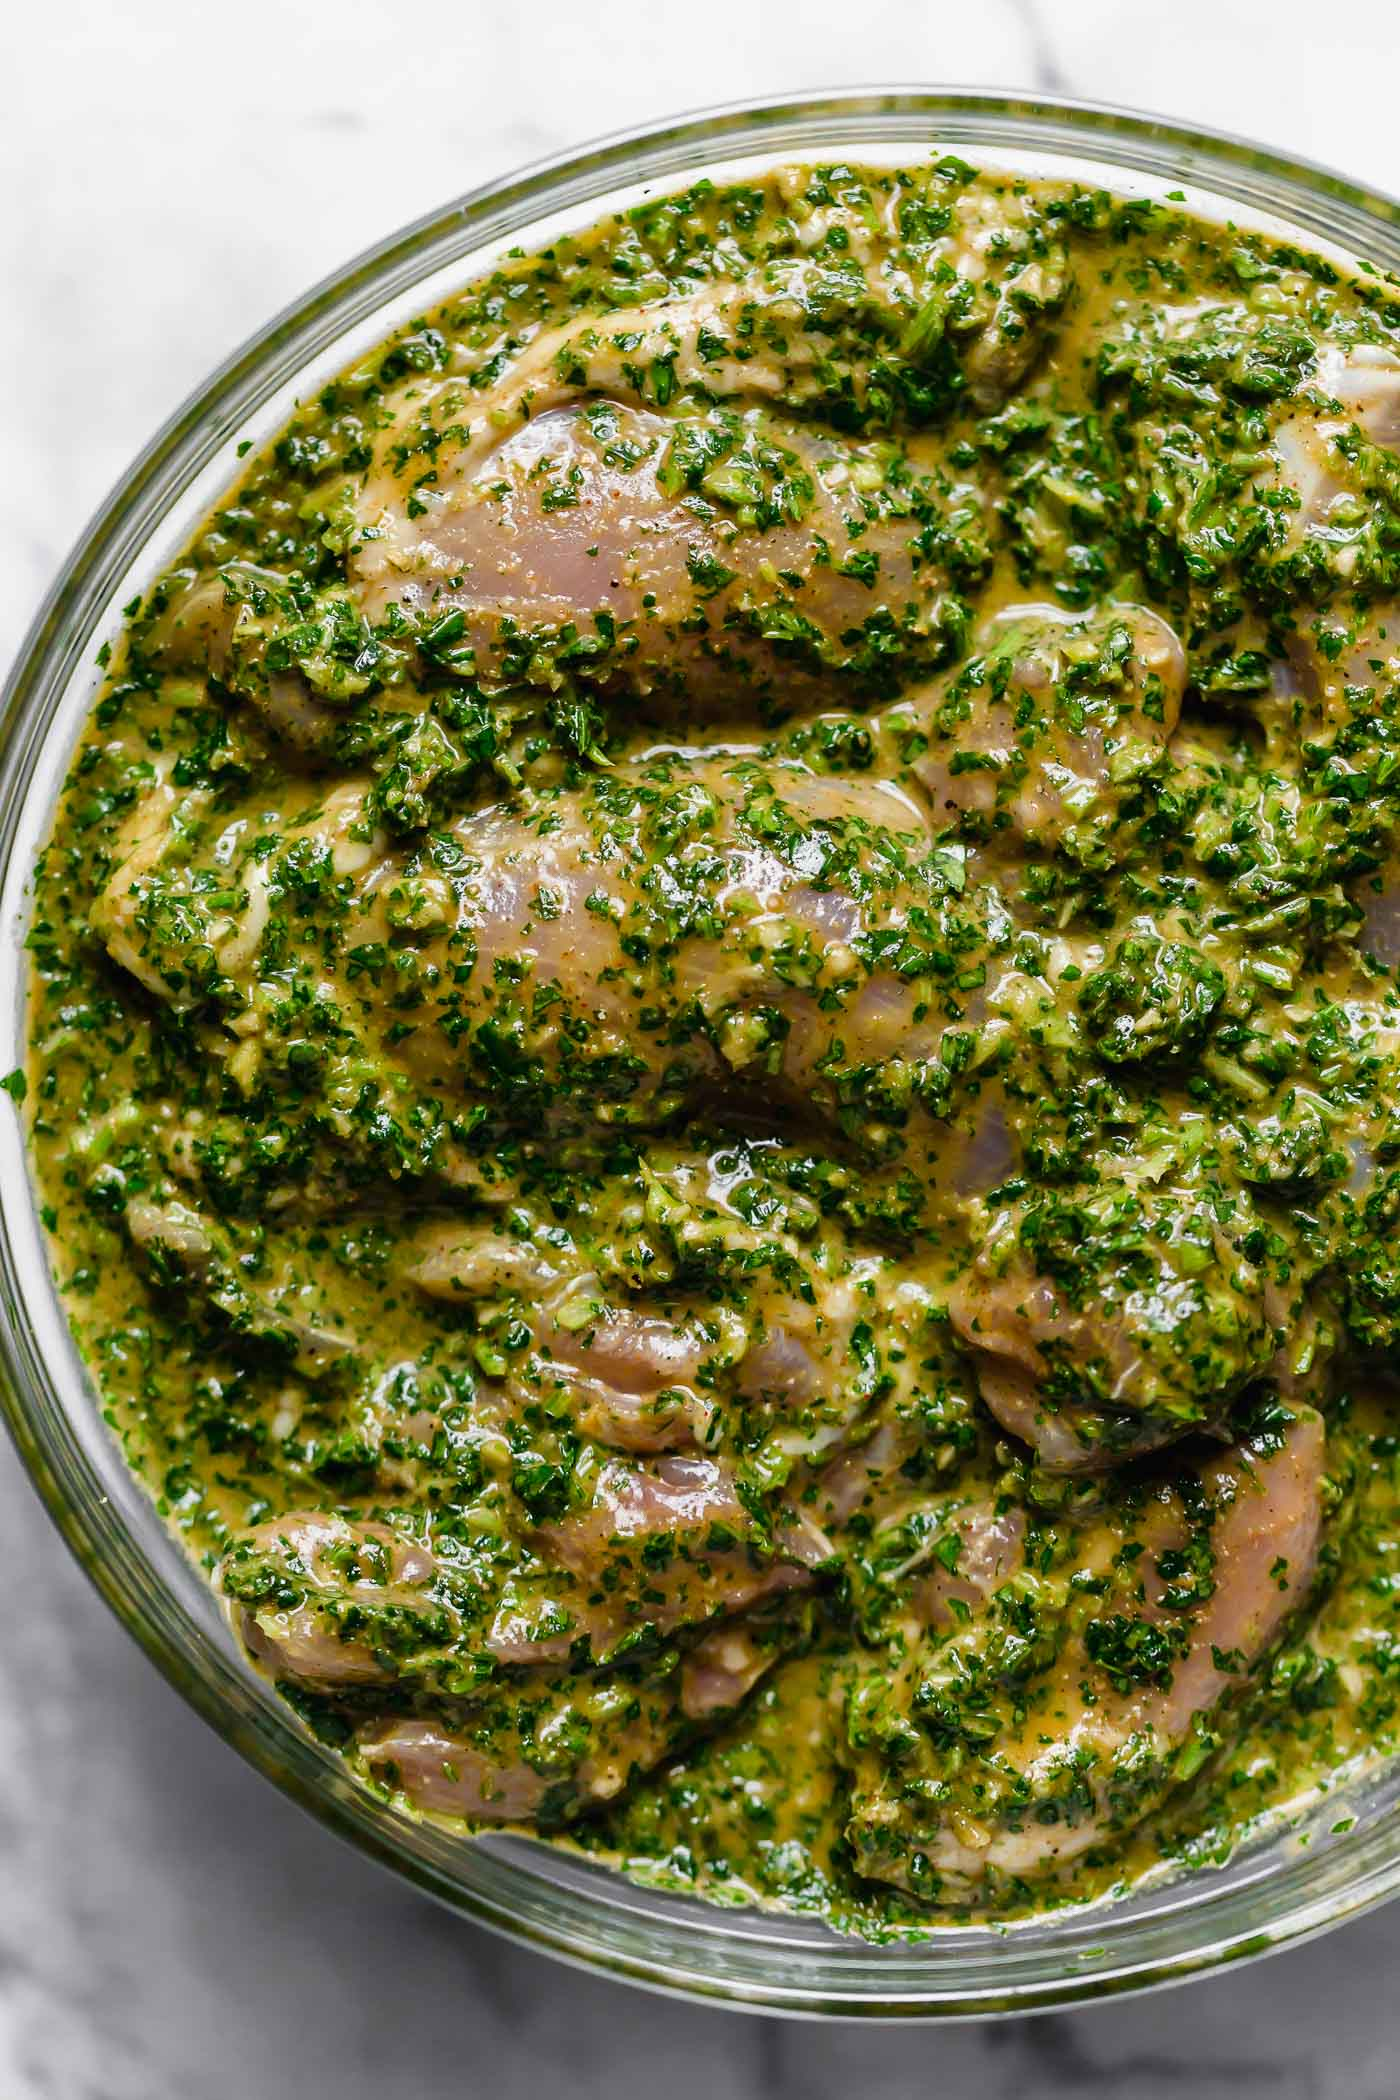 Similar to chimichurri, chermoula is packed with garlic & punchy fresh herbs (like cilantro, parsley, mint), but it also has a hint of warmth from spices common in North African & Middle Eastern cooking (cumin & coriander ftw!). It's traditionally served over grilled fish...but I'm pretty sure once you have it you'll want to put it on everythaaang. #playswellwithbutter #chermoula #chermoulasauce #morrocanfood #morrocanrecipes #marinaderecipe #easymarinade #grillingrecipes #chickenmarinade